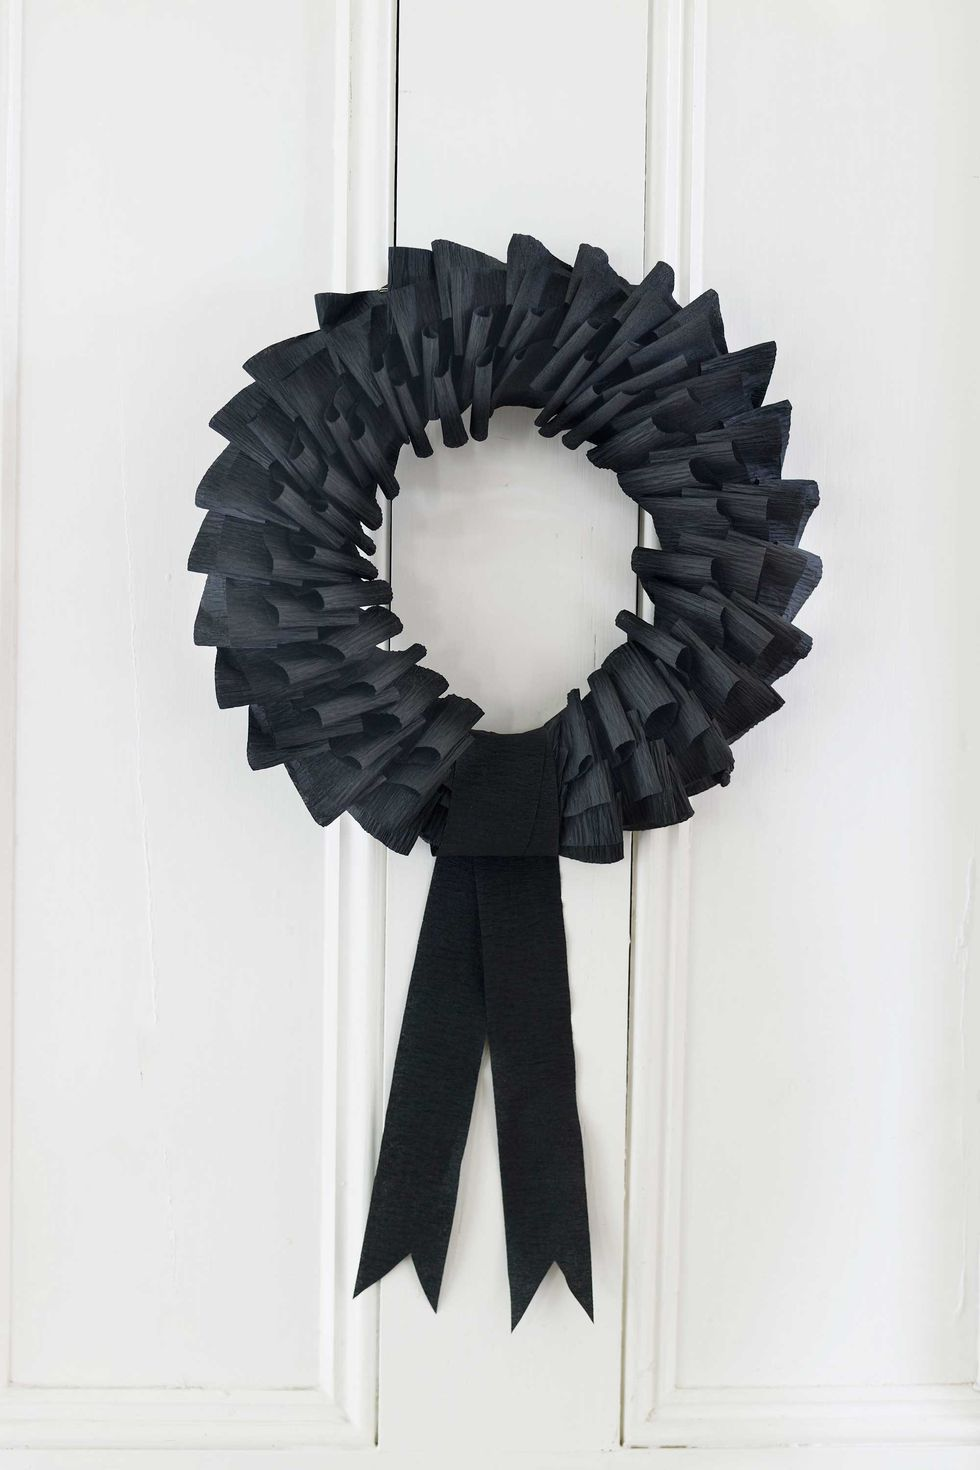 Black Wreath: These 30 DIY Halloween Decorations That Are Wickedly Creative will save you money and allow your creativity to flourish